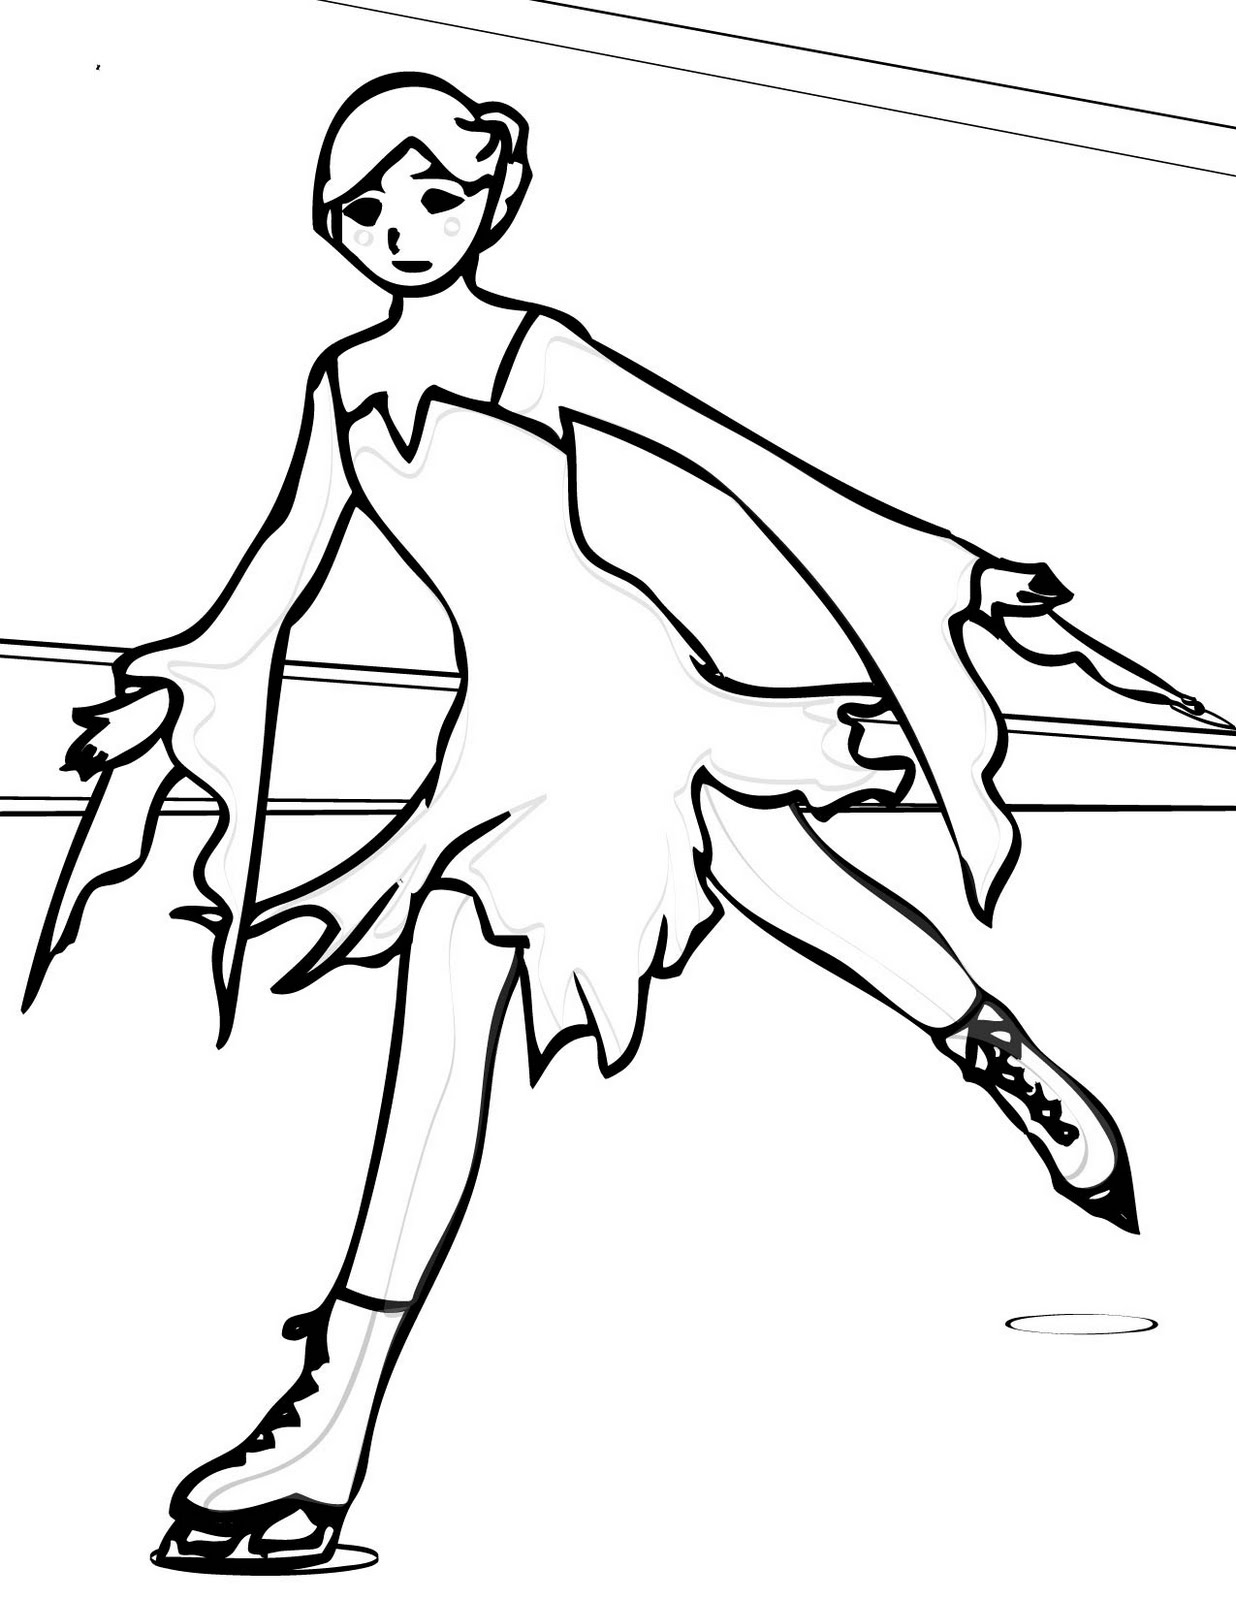 children ice skating coloring pages - photo#22